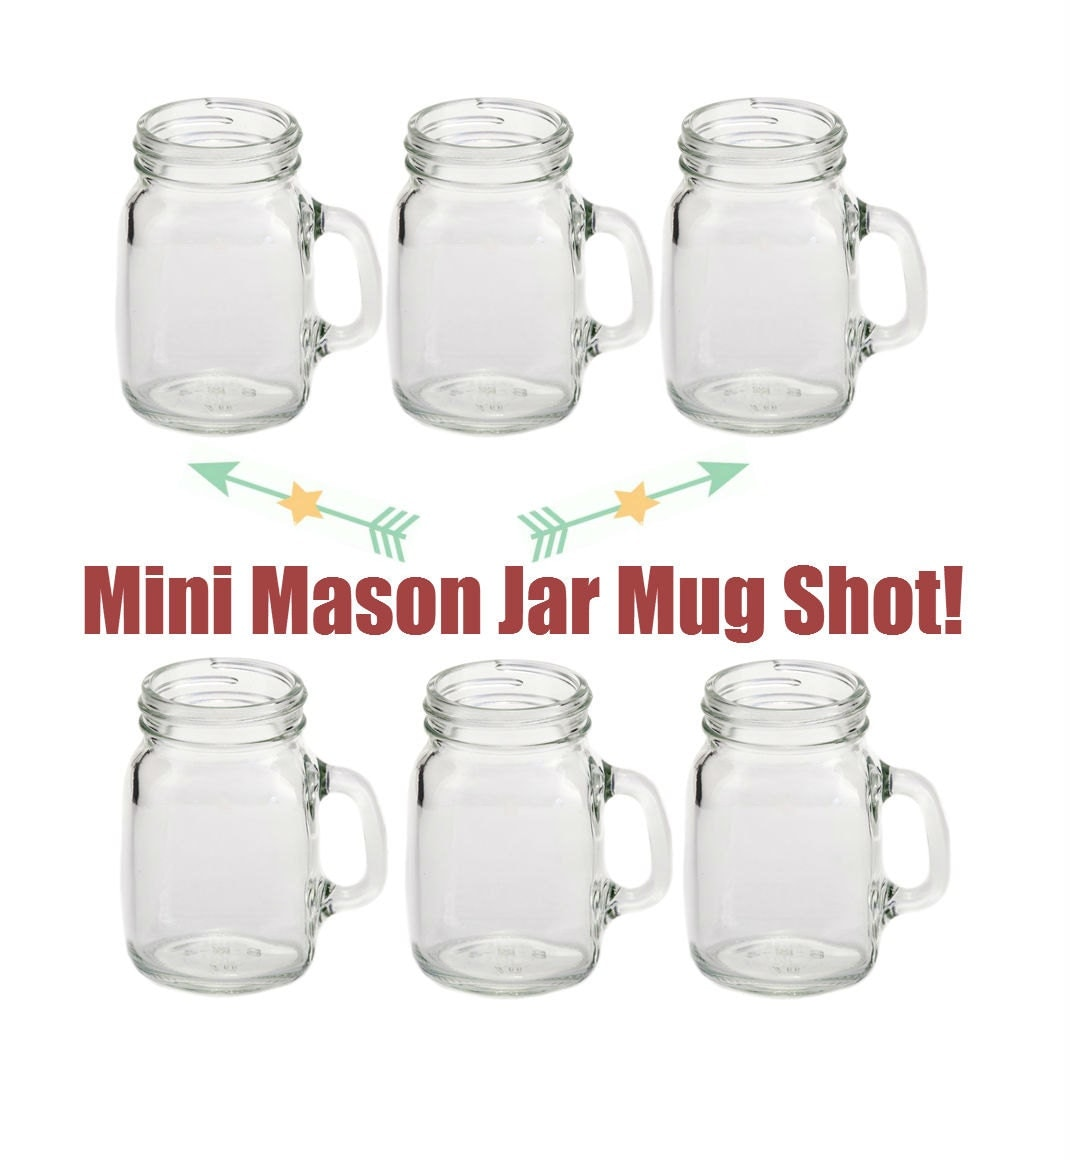 6 4oz mini mason jar mug shot glasses set of 6. Black Bedroom Furniture Sets. Home Design Ideas